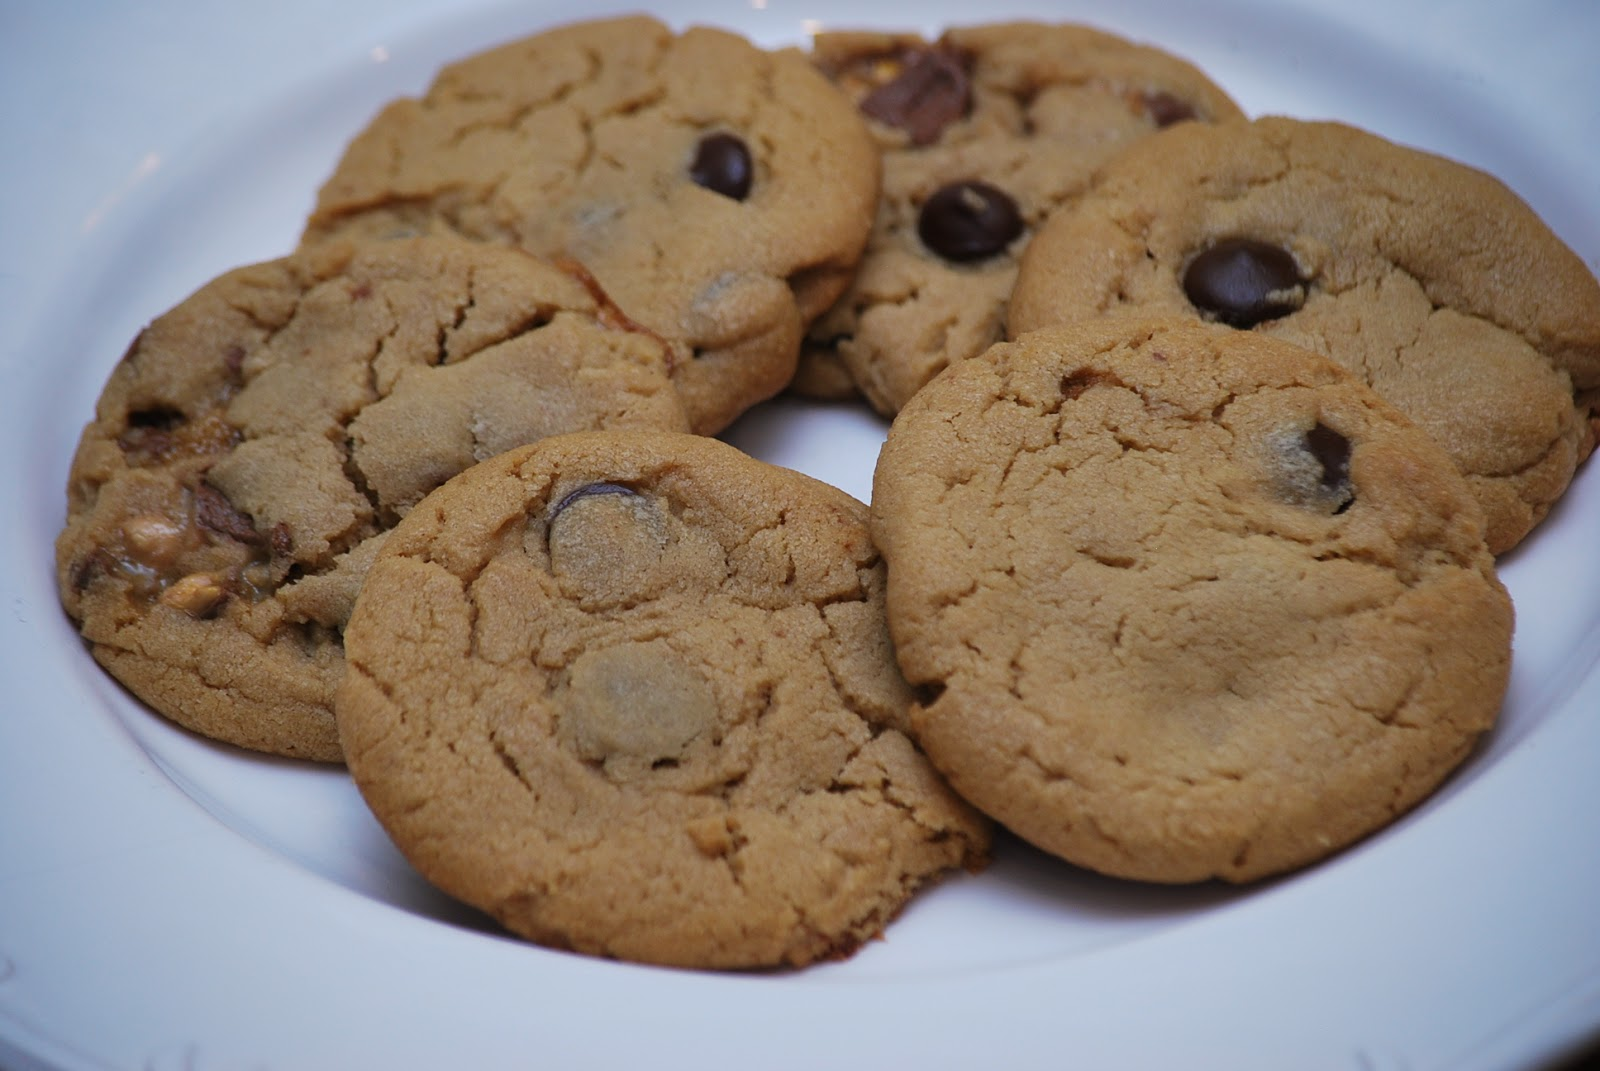 My story in recipes: Peanut Butter Snickers Cookies